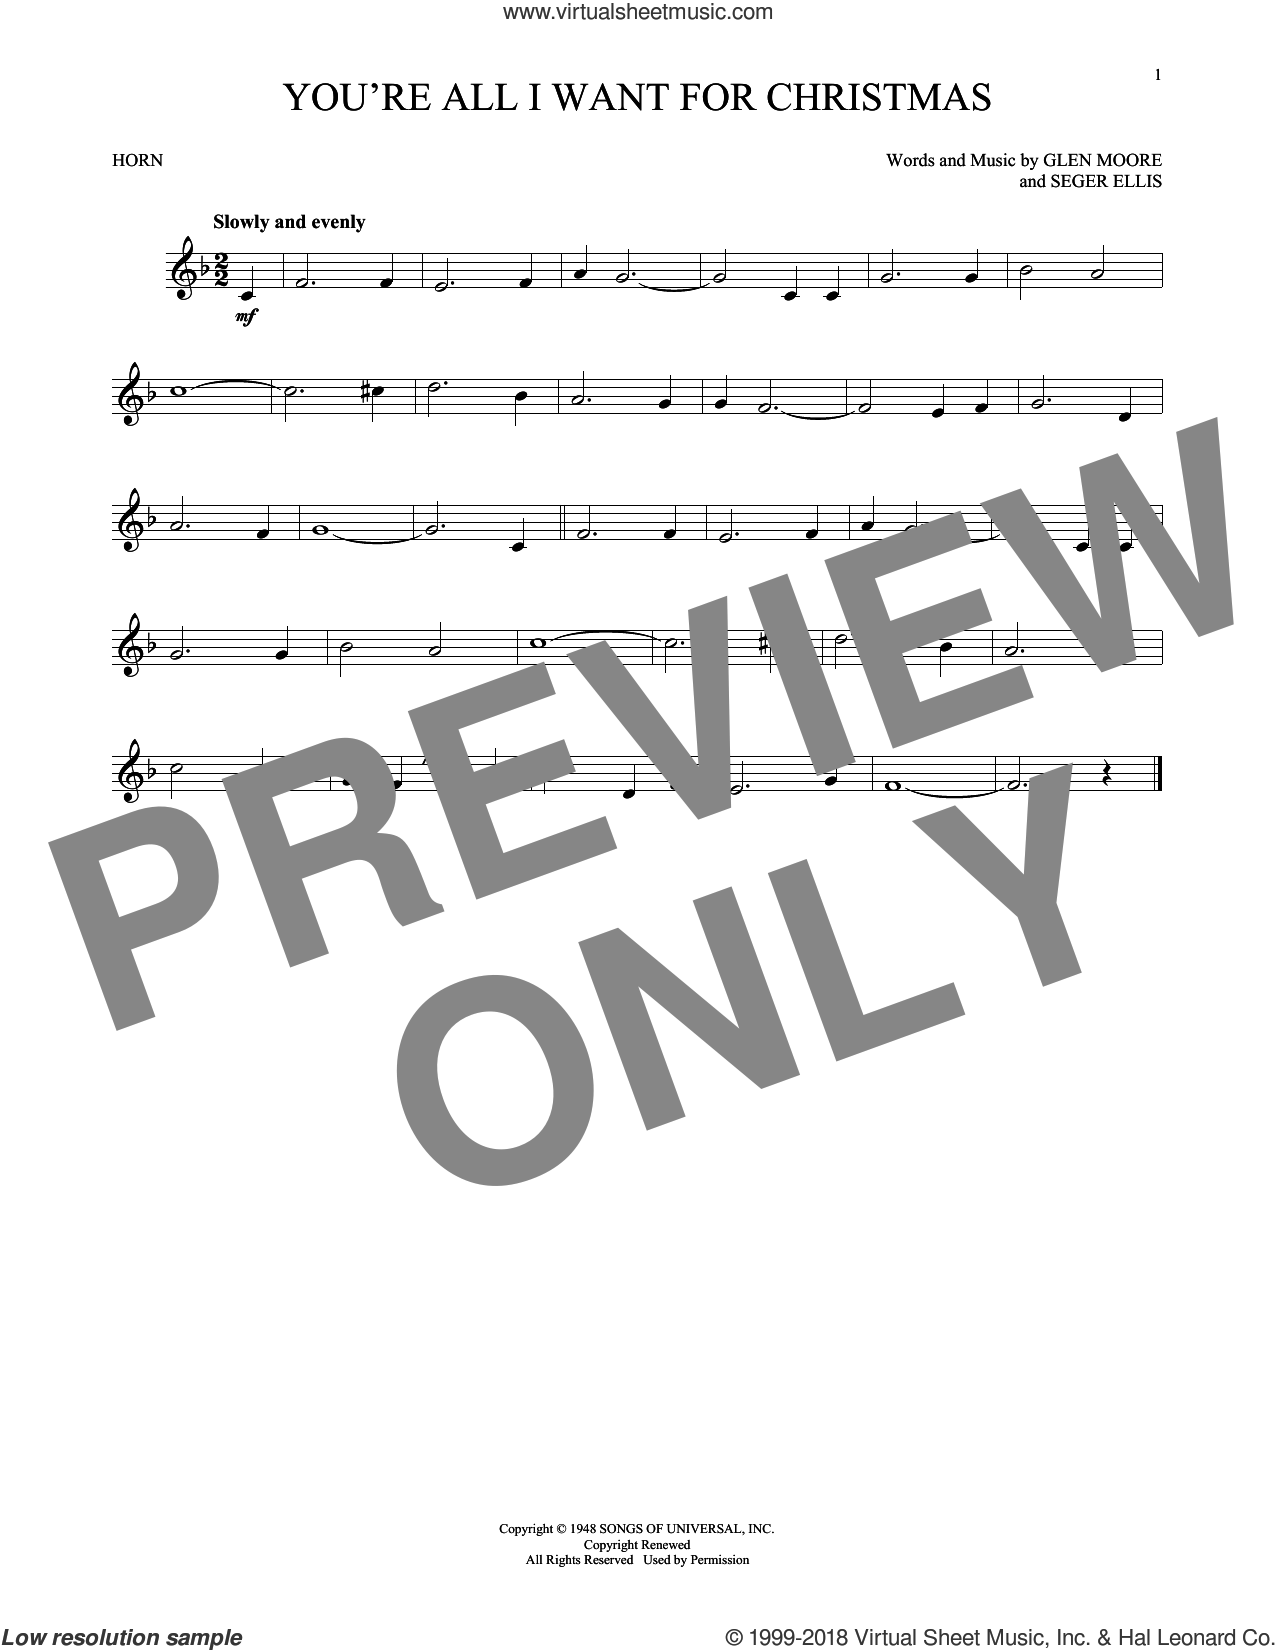 You're All I Want For Christmas sheet music for horn solo by Glen Moore, Frank Gallagher, Glen Moore & Seger Ellis and Seger Ellis, intermediate skill level